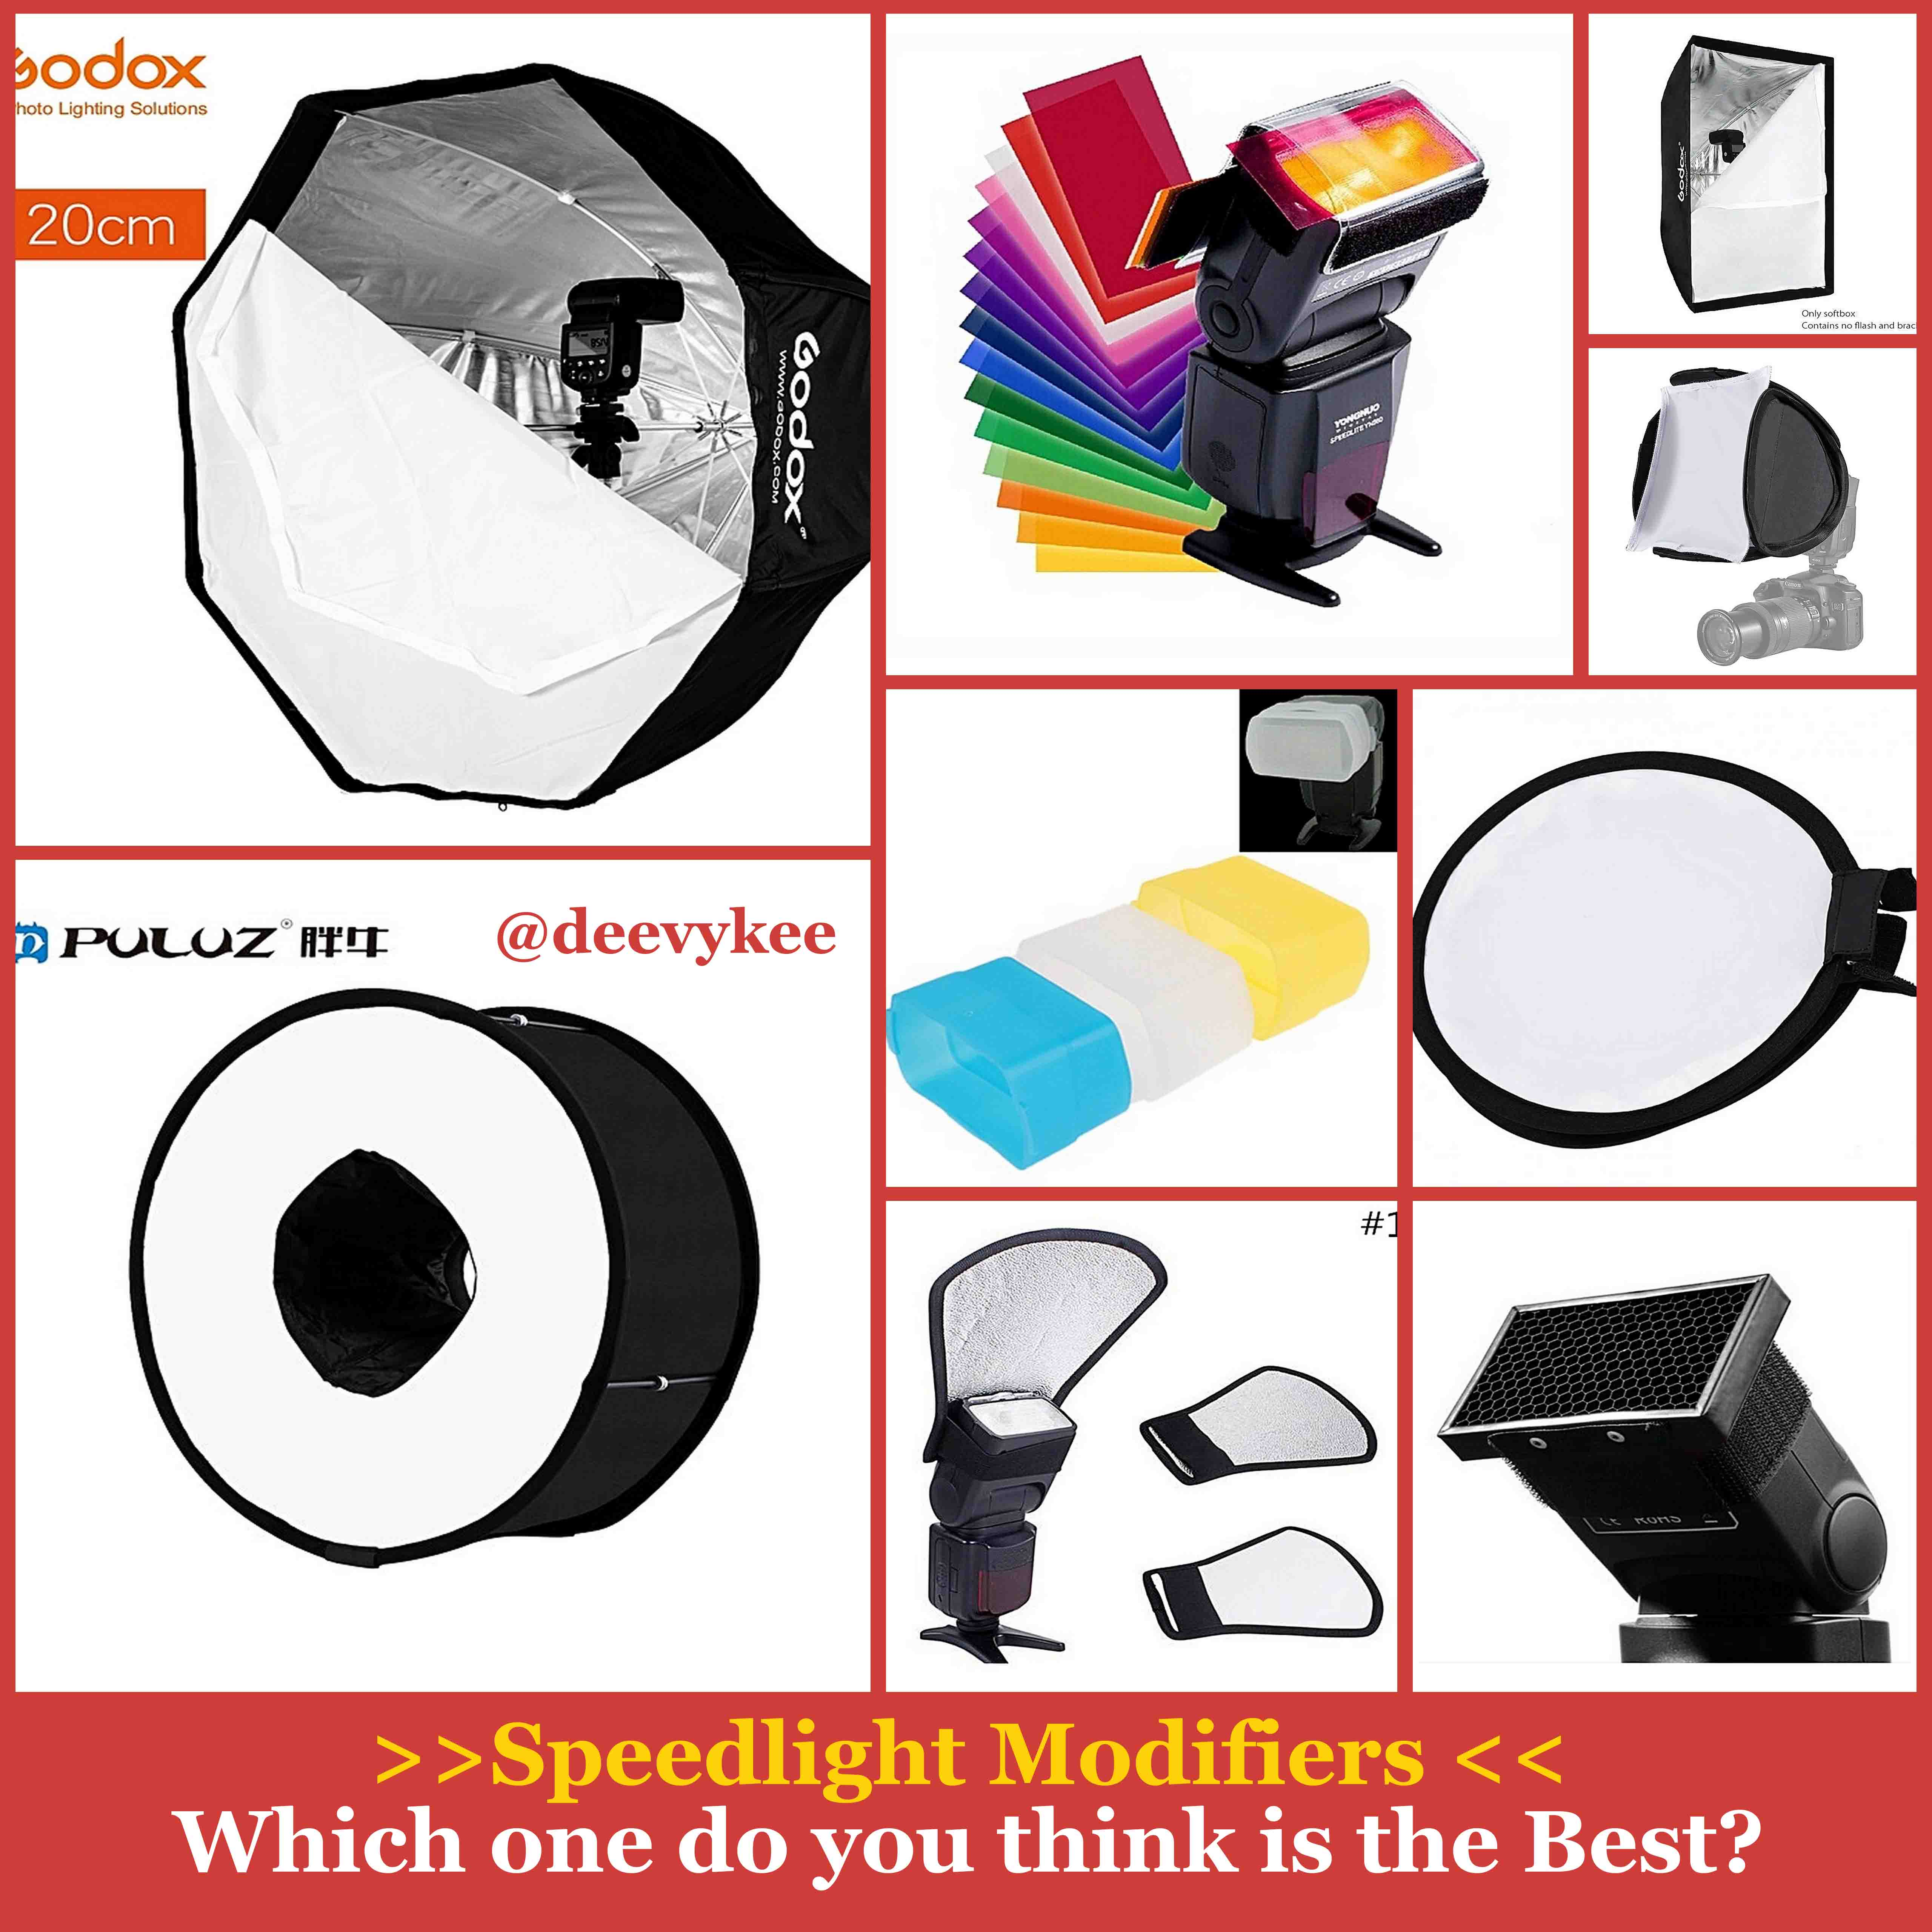 Top 10 Light Modifiers for your Godox, Canon or Nikon Speedlite you can buy online in Nigeria 23